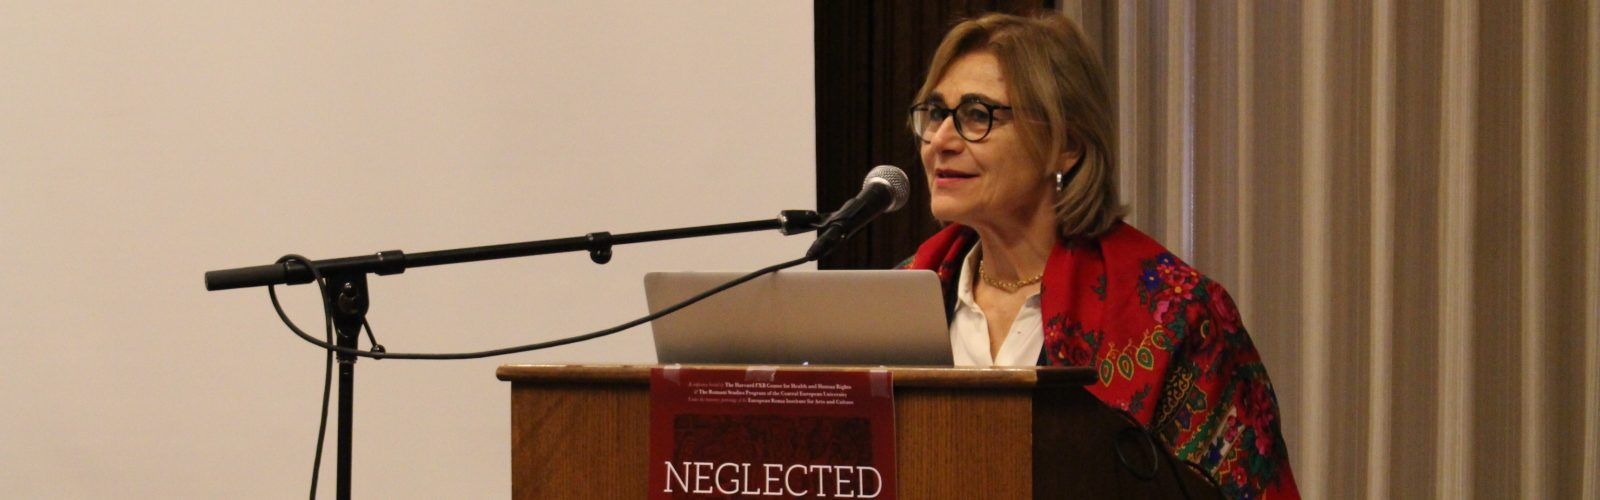 Professor Bhabha: States Have an Obligation to Protect Migrant Children